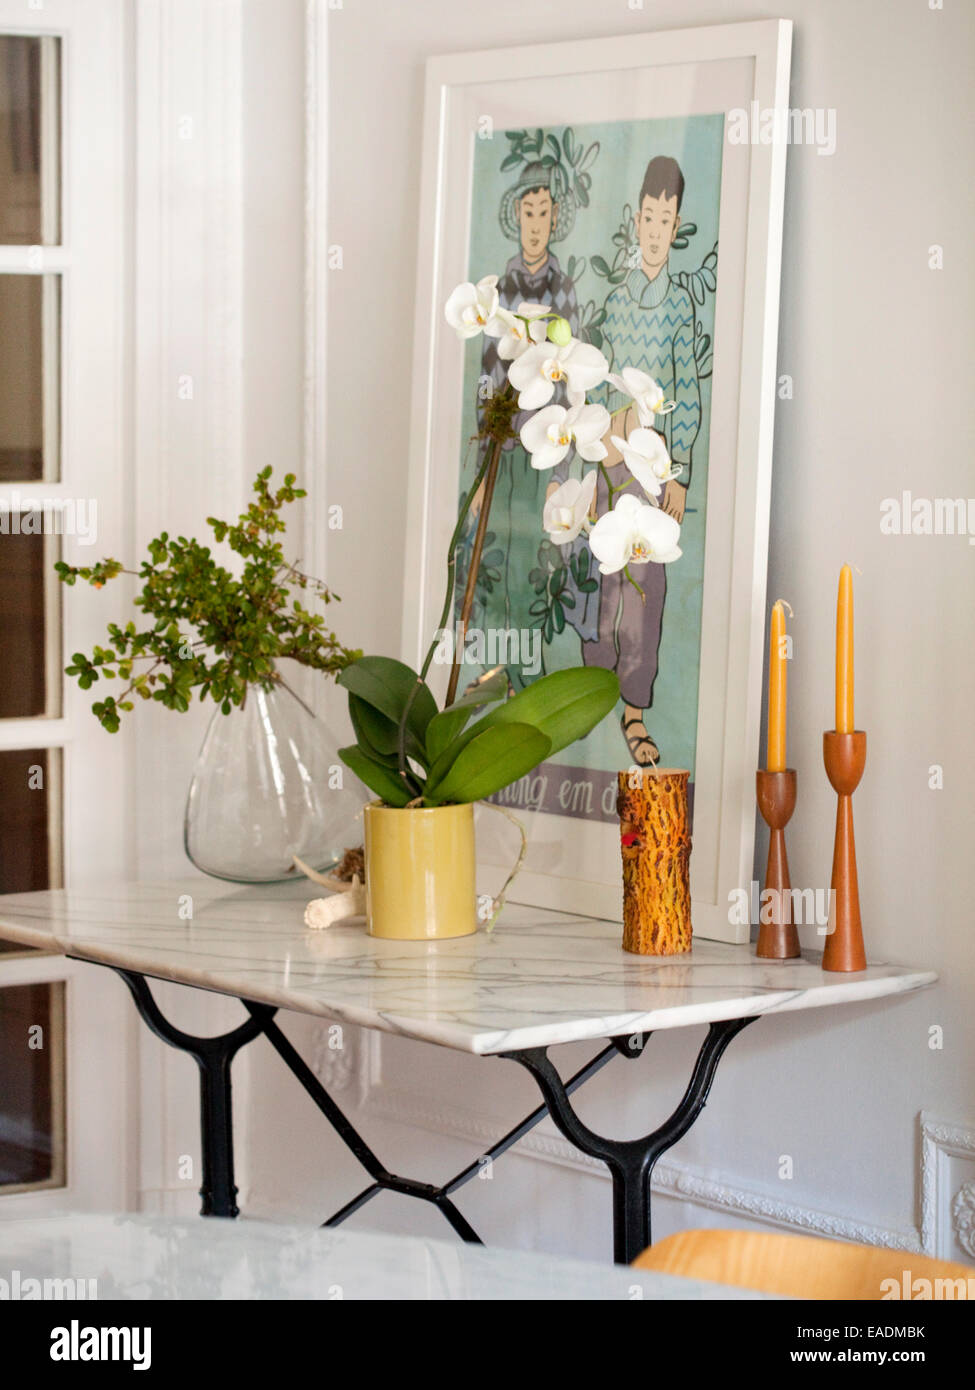 https://c8.alamy.com/comp/EADMBK/white-orchid-on-dining-room-side-table-EADMBK.jpg